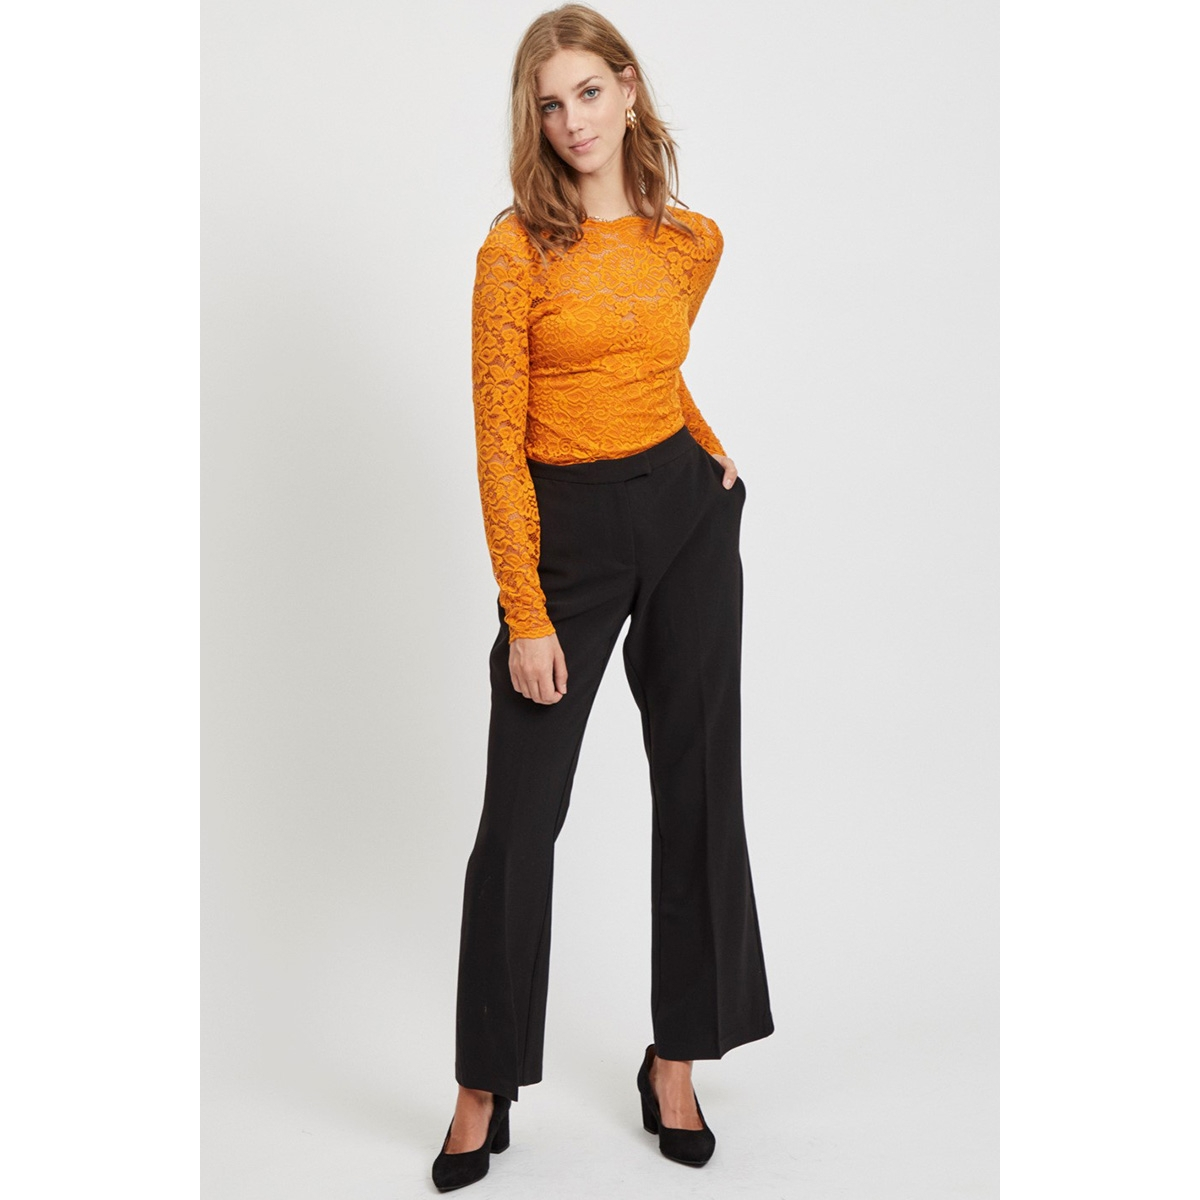 vicharlotte rw flared pants 14053845 vila broek black